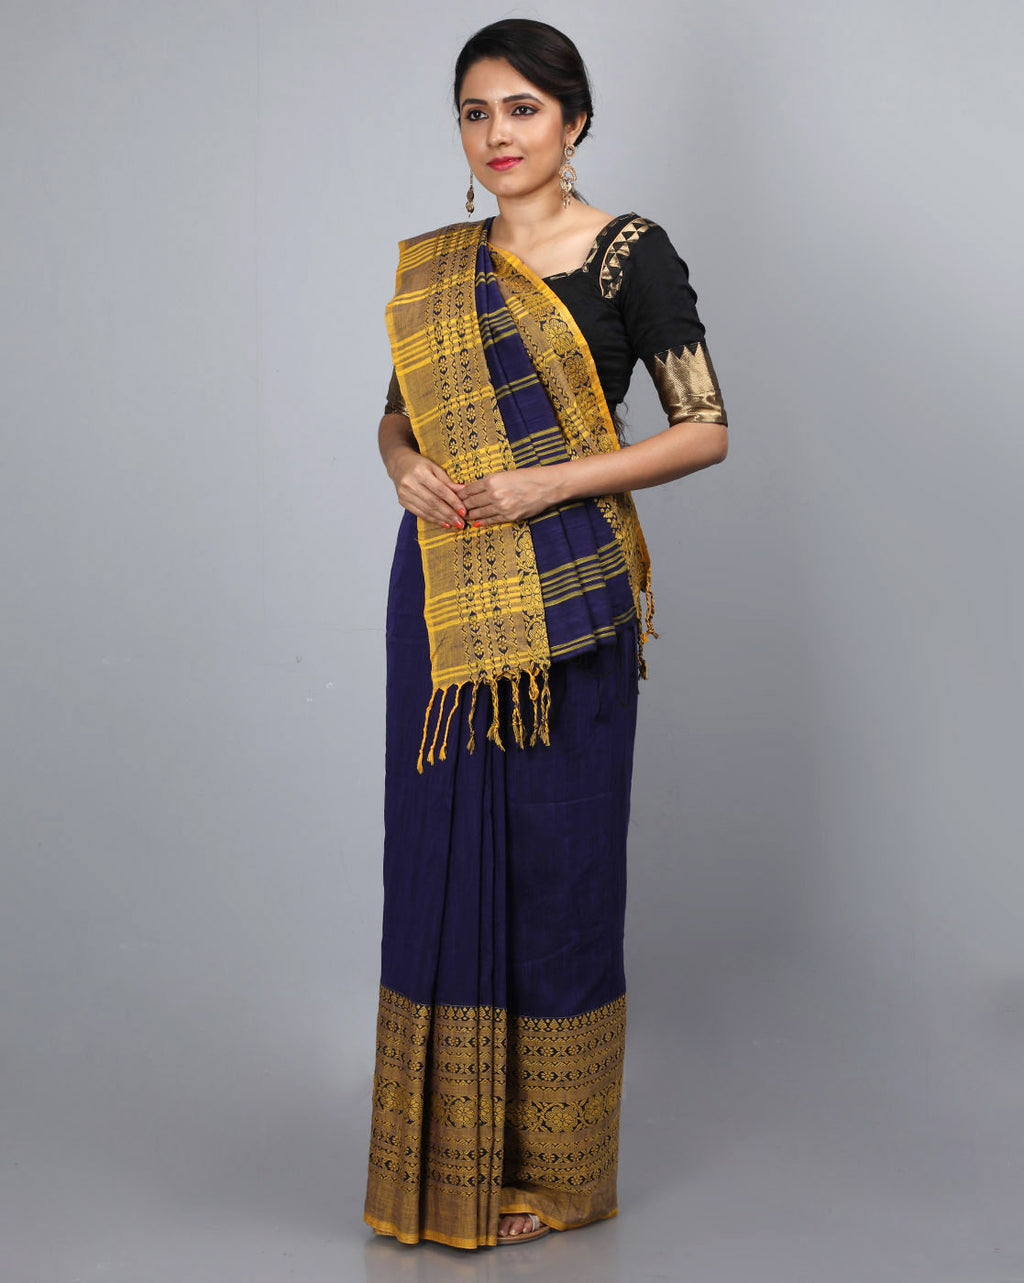 Phulia Cotton Saree with Thick and Thin Floral Border - Navy Blue/Yellow